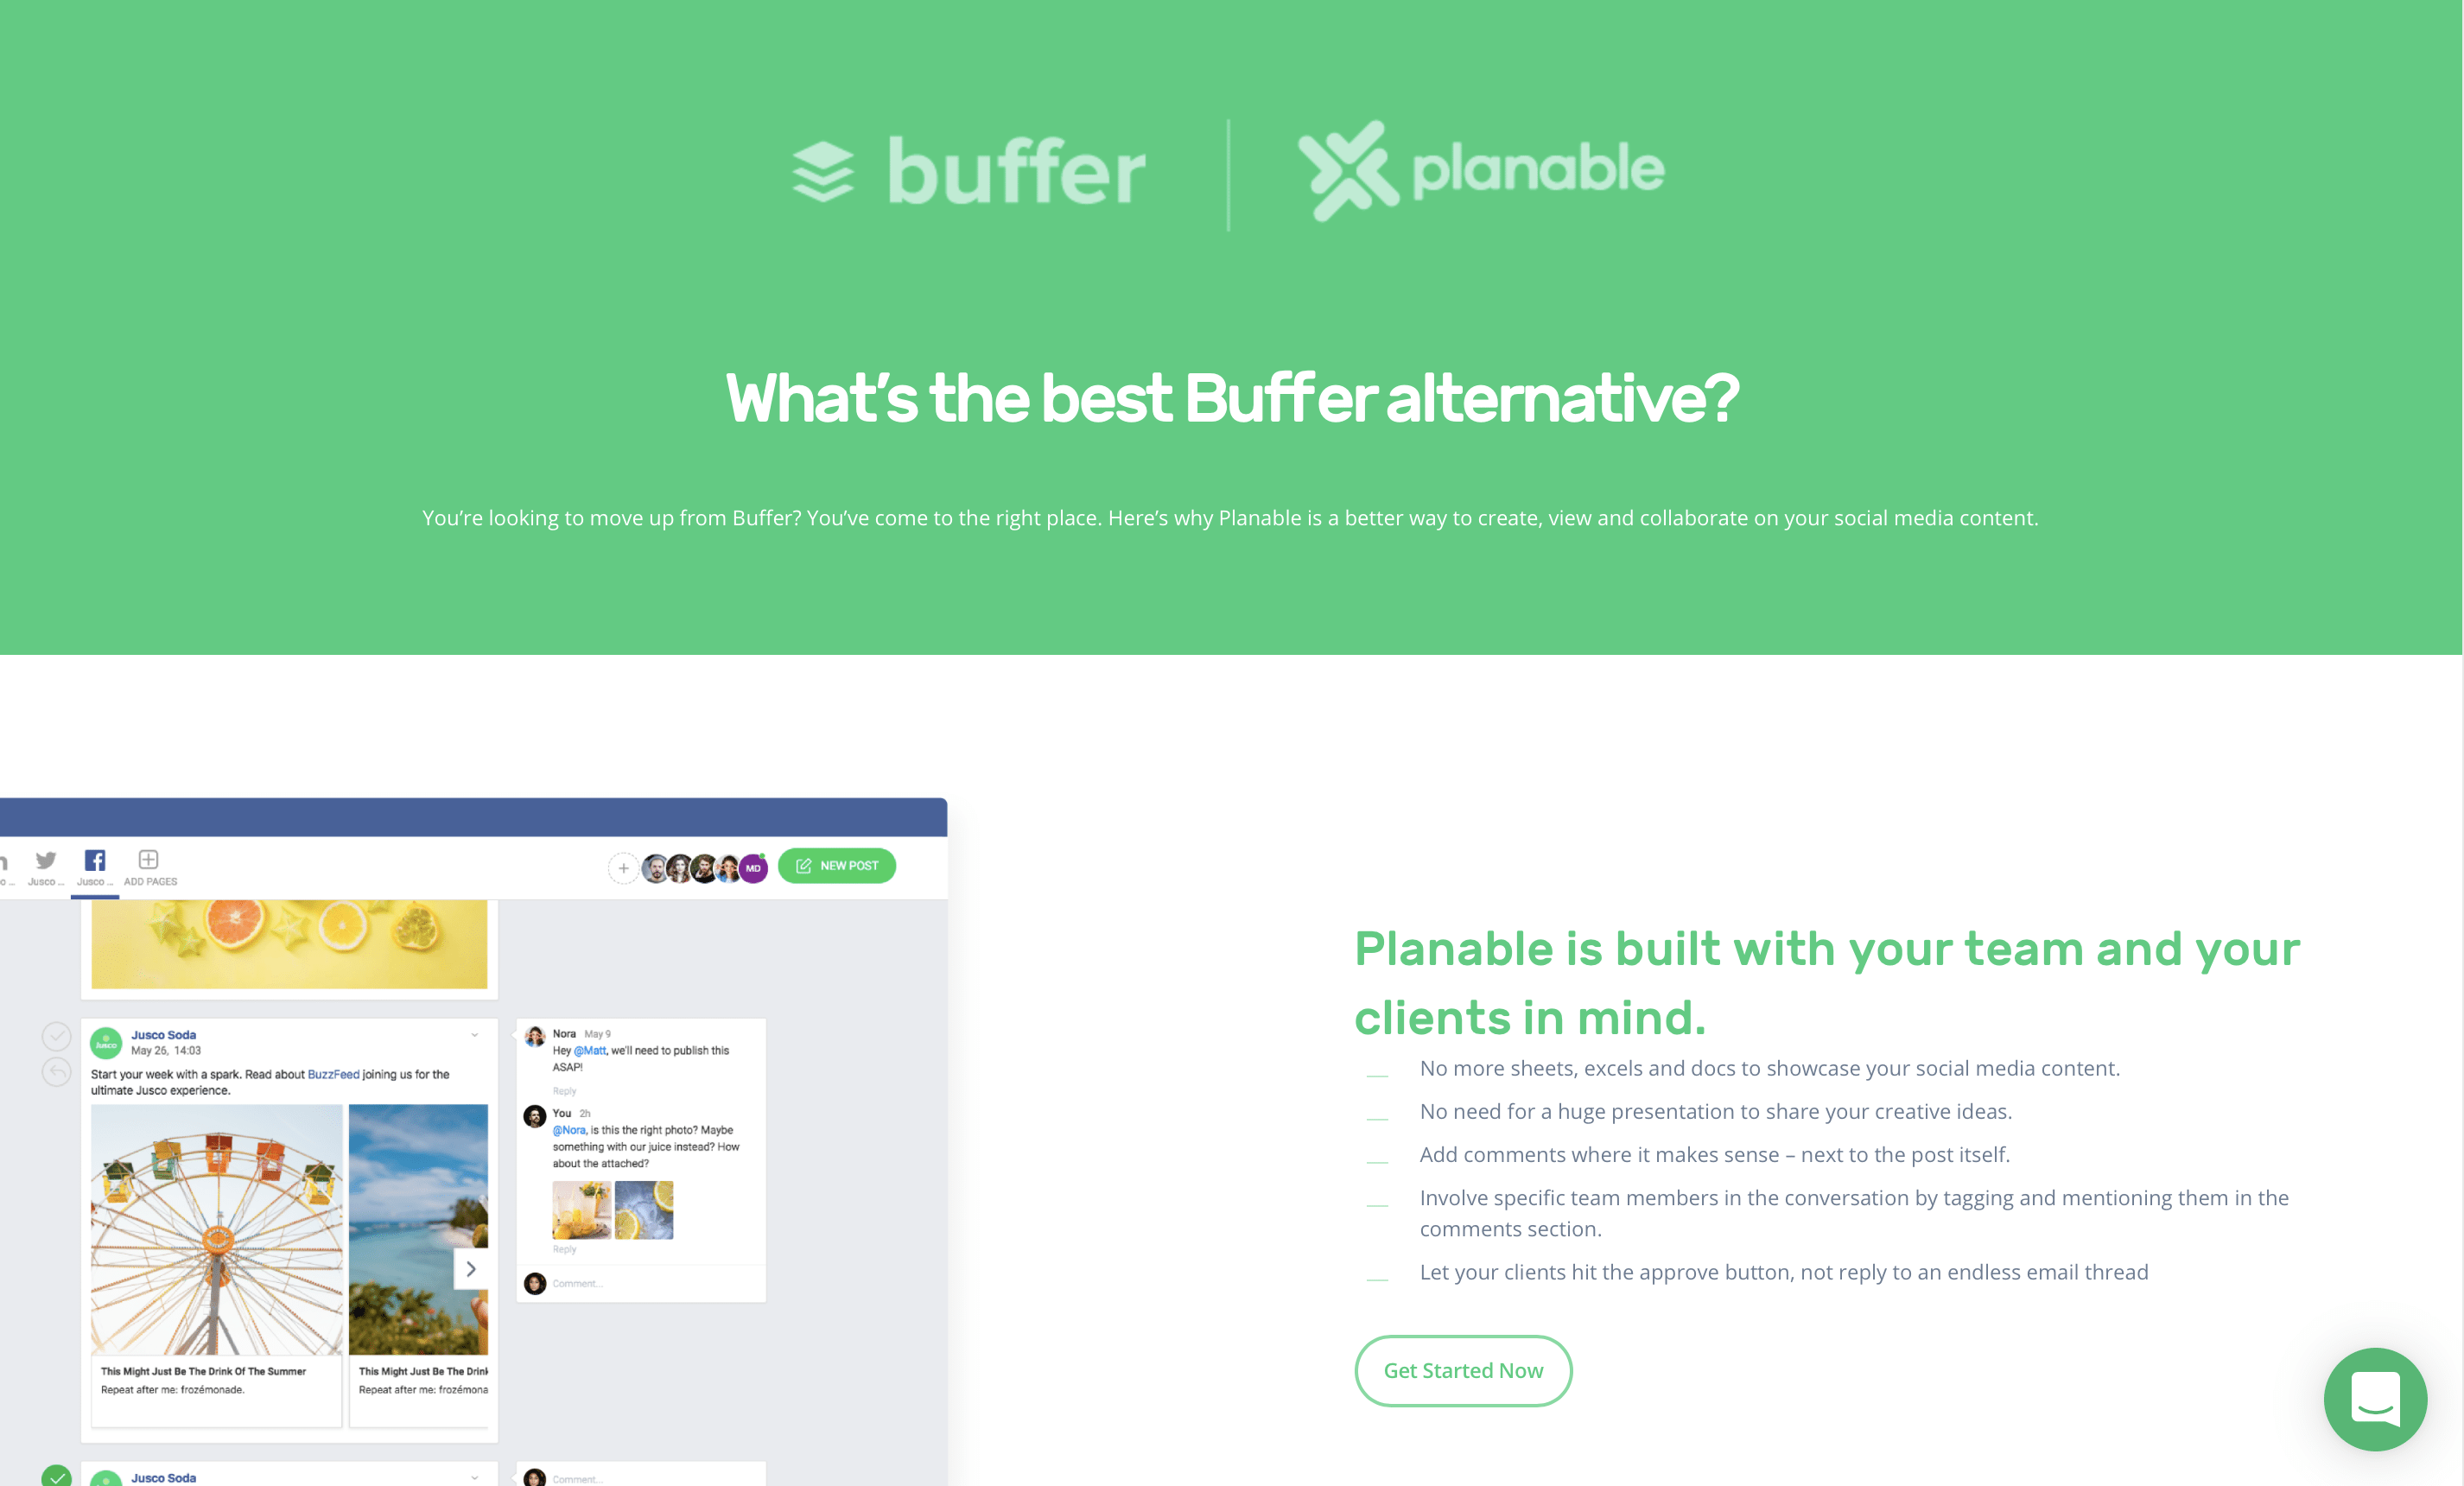 planable vs buffer comparison page marketing collateral example